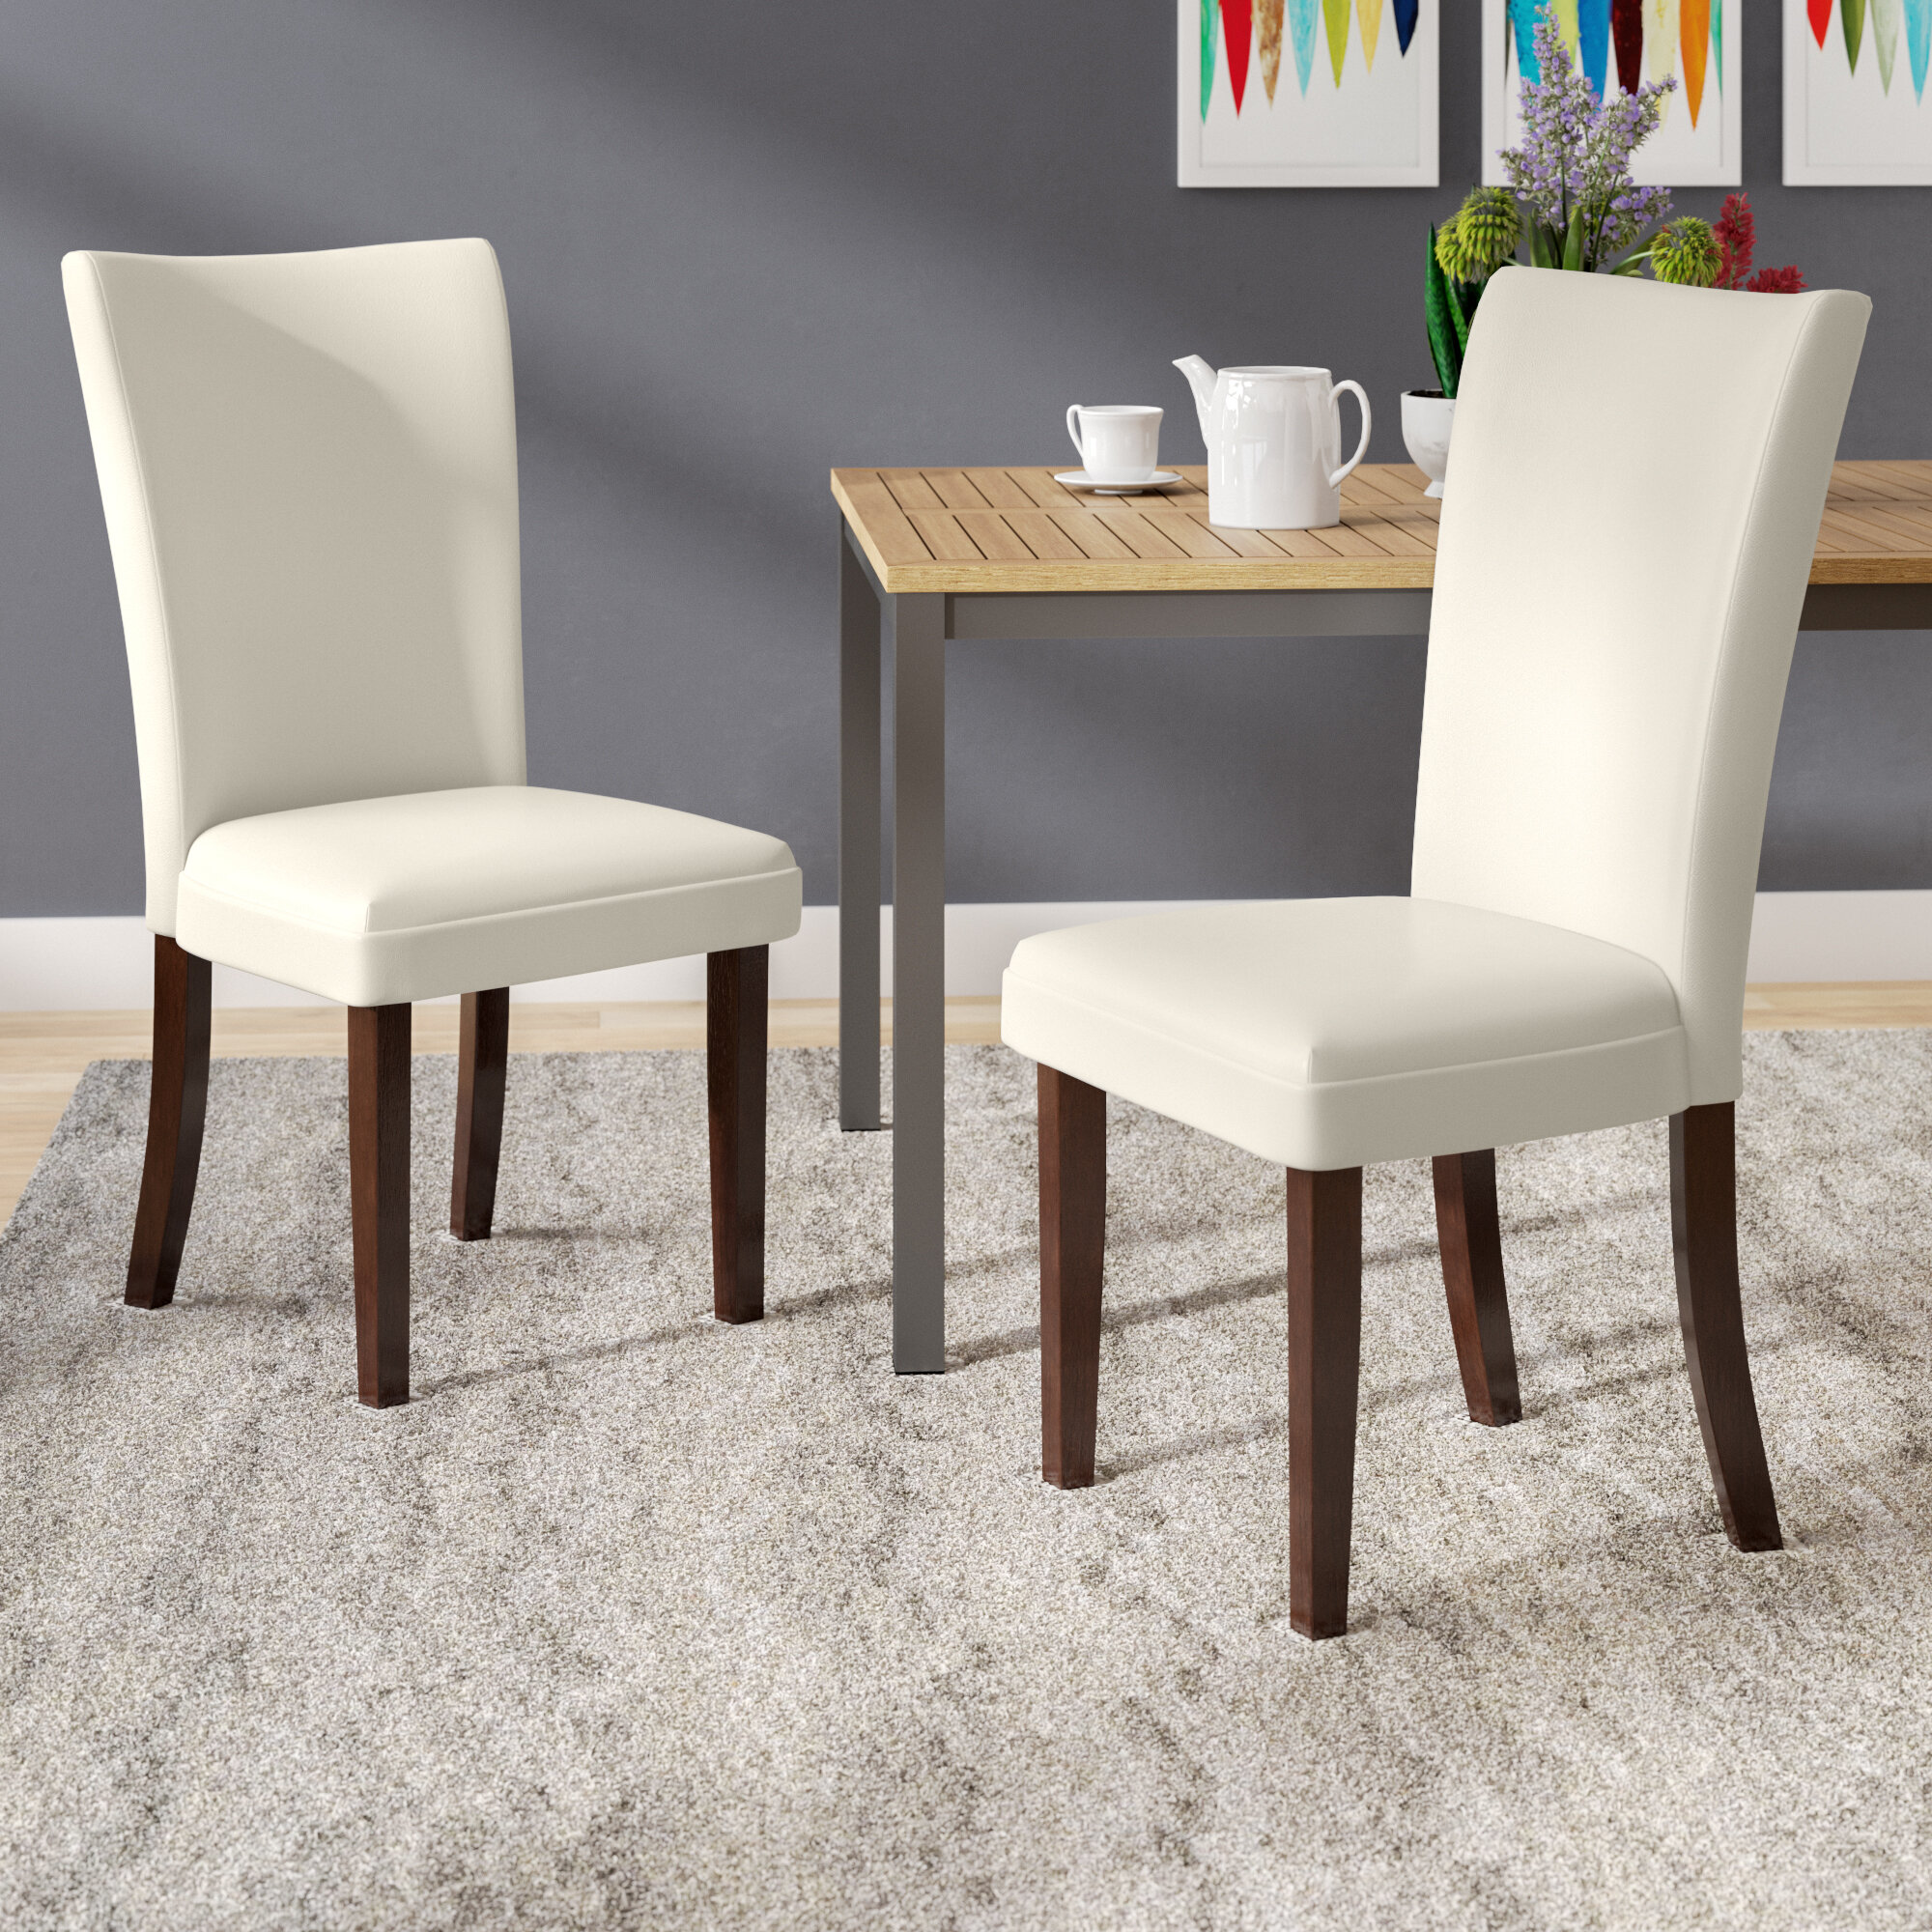 Latitude Run Hargrave Upholstered Side Chair In Off White Reviews Wayfair